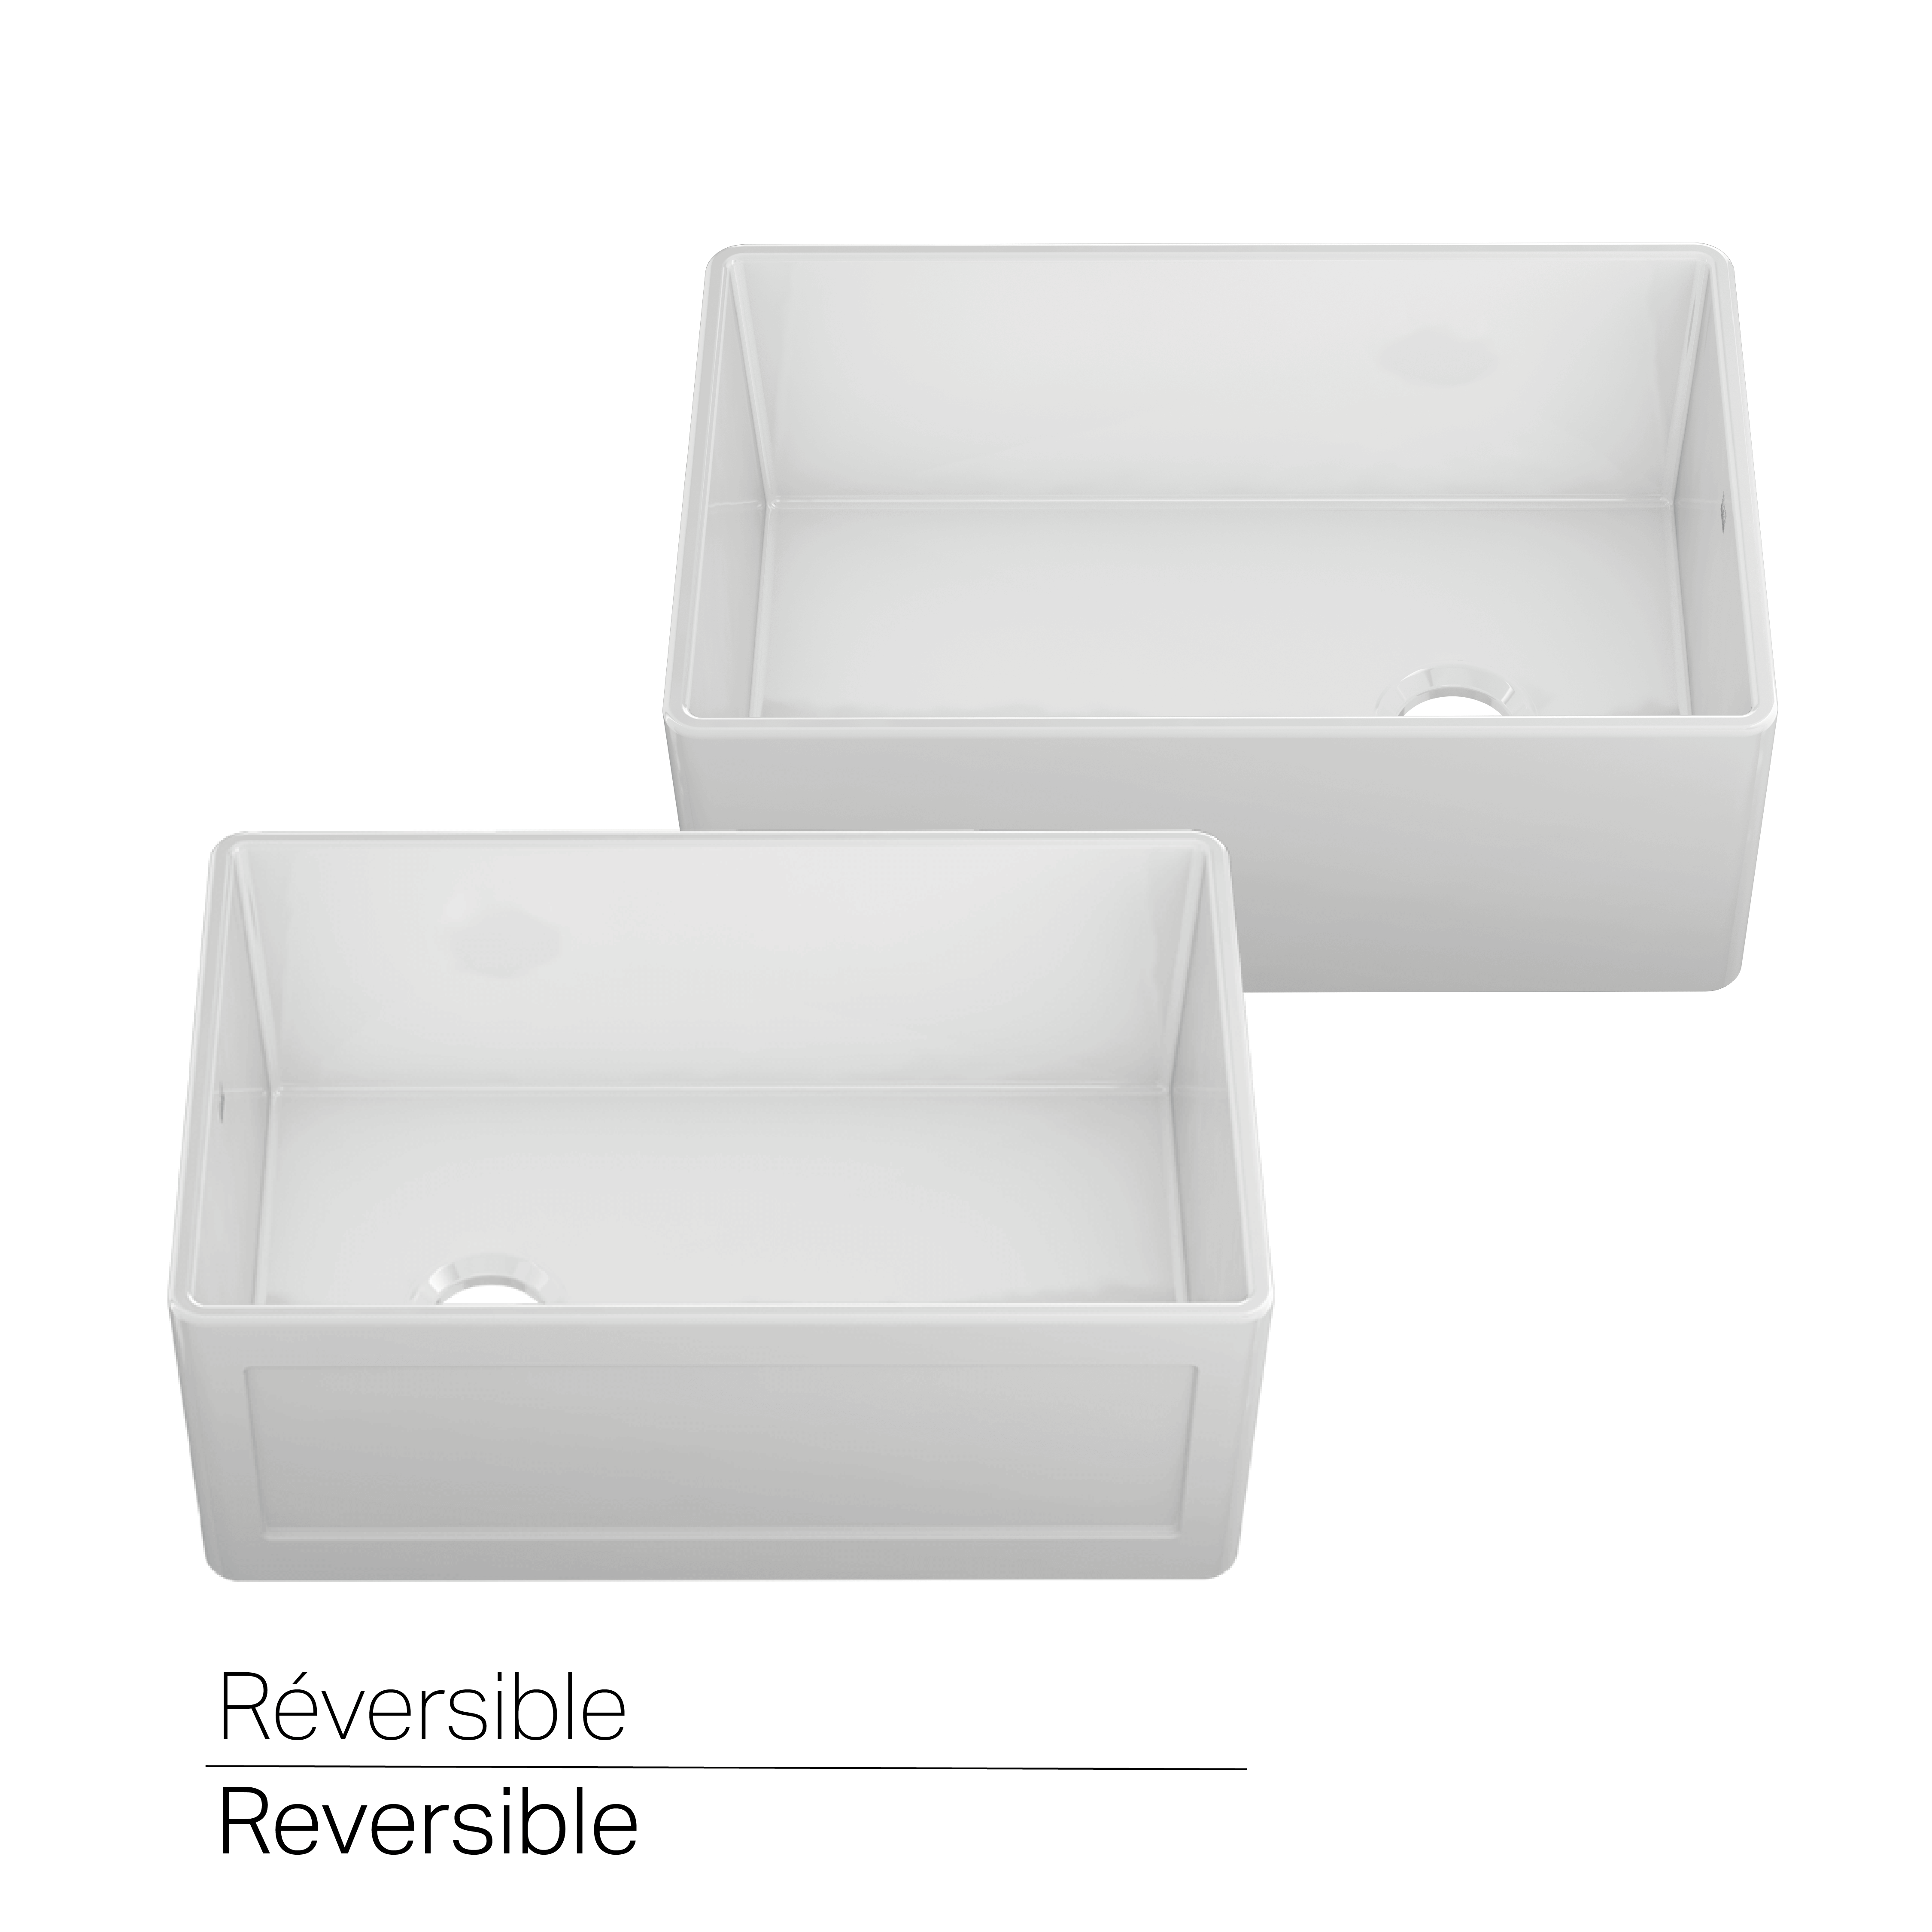 Bowl Reversible Farmhouse Kitchen Sink ProTerra Fireclay - ProChef